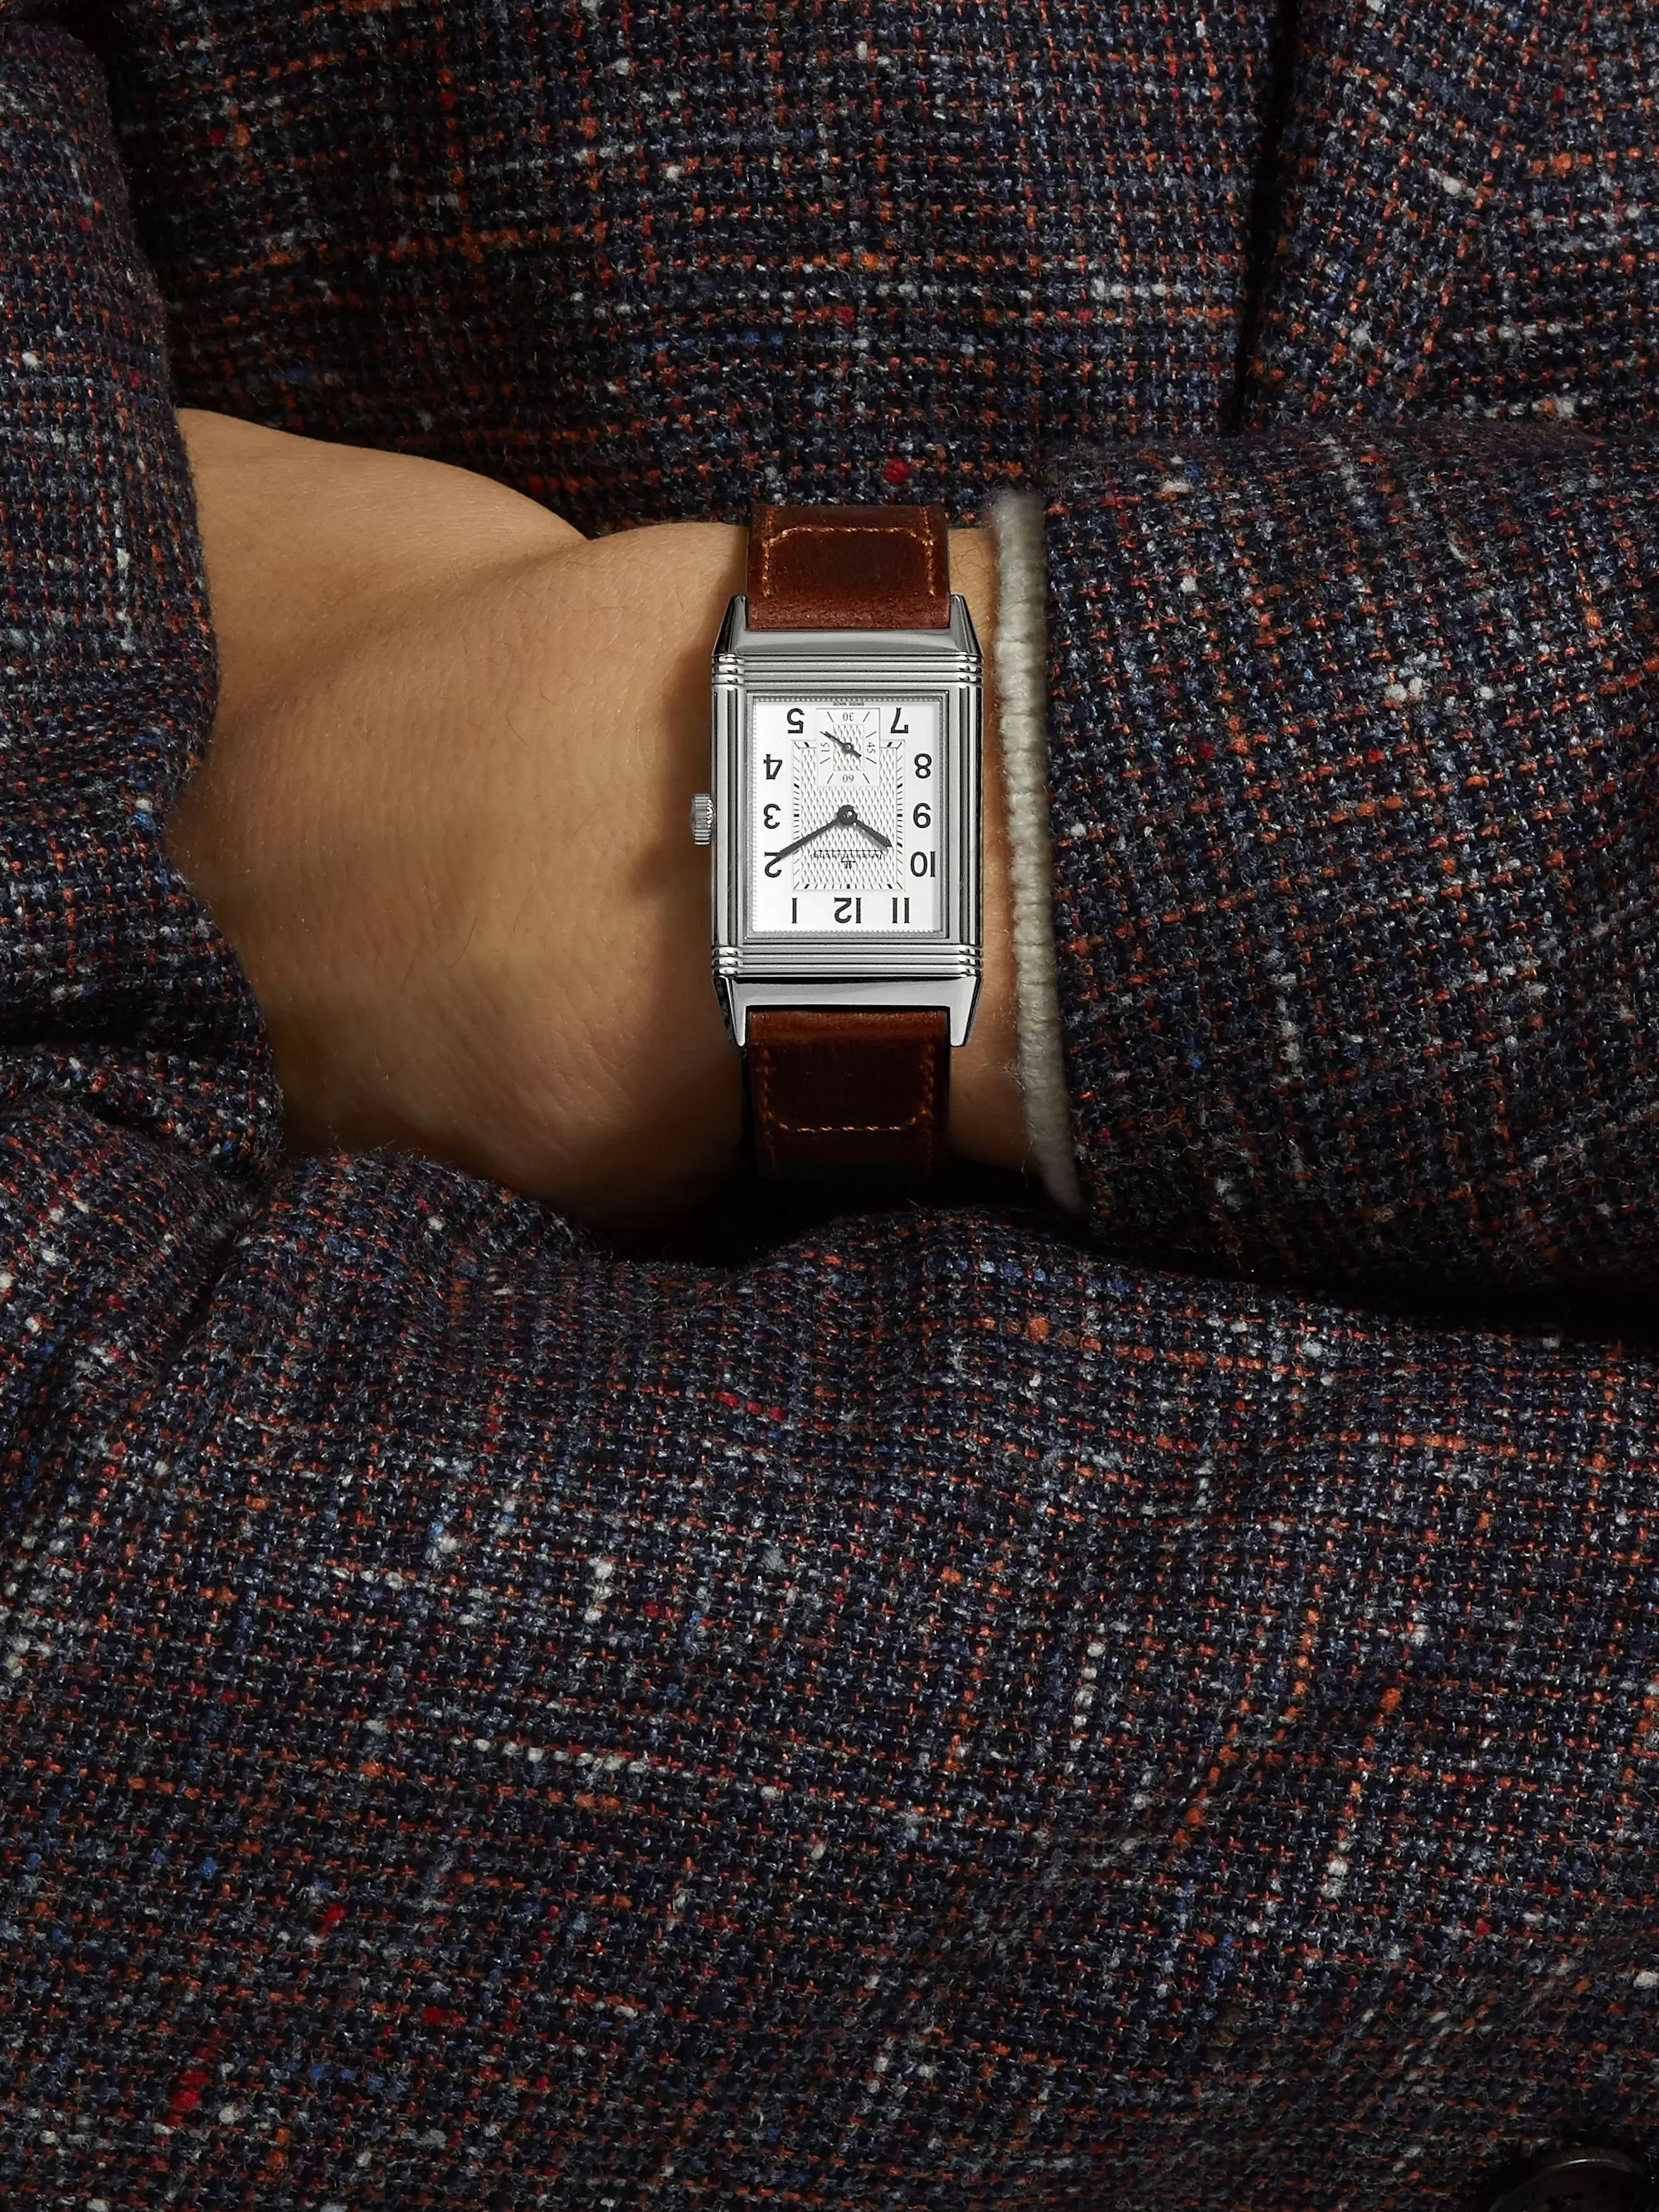 Jaeger-LeCoultre Reverso Classic Medium Hand-Wound 25.5mm Stainless Steel and Leather Watch